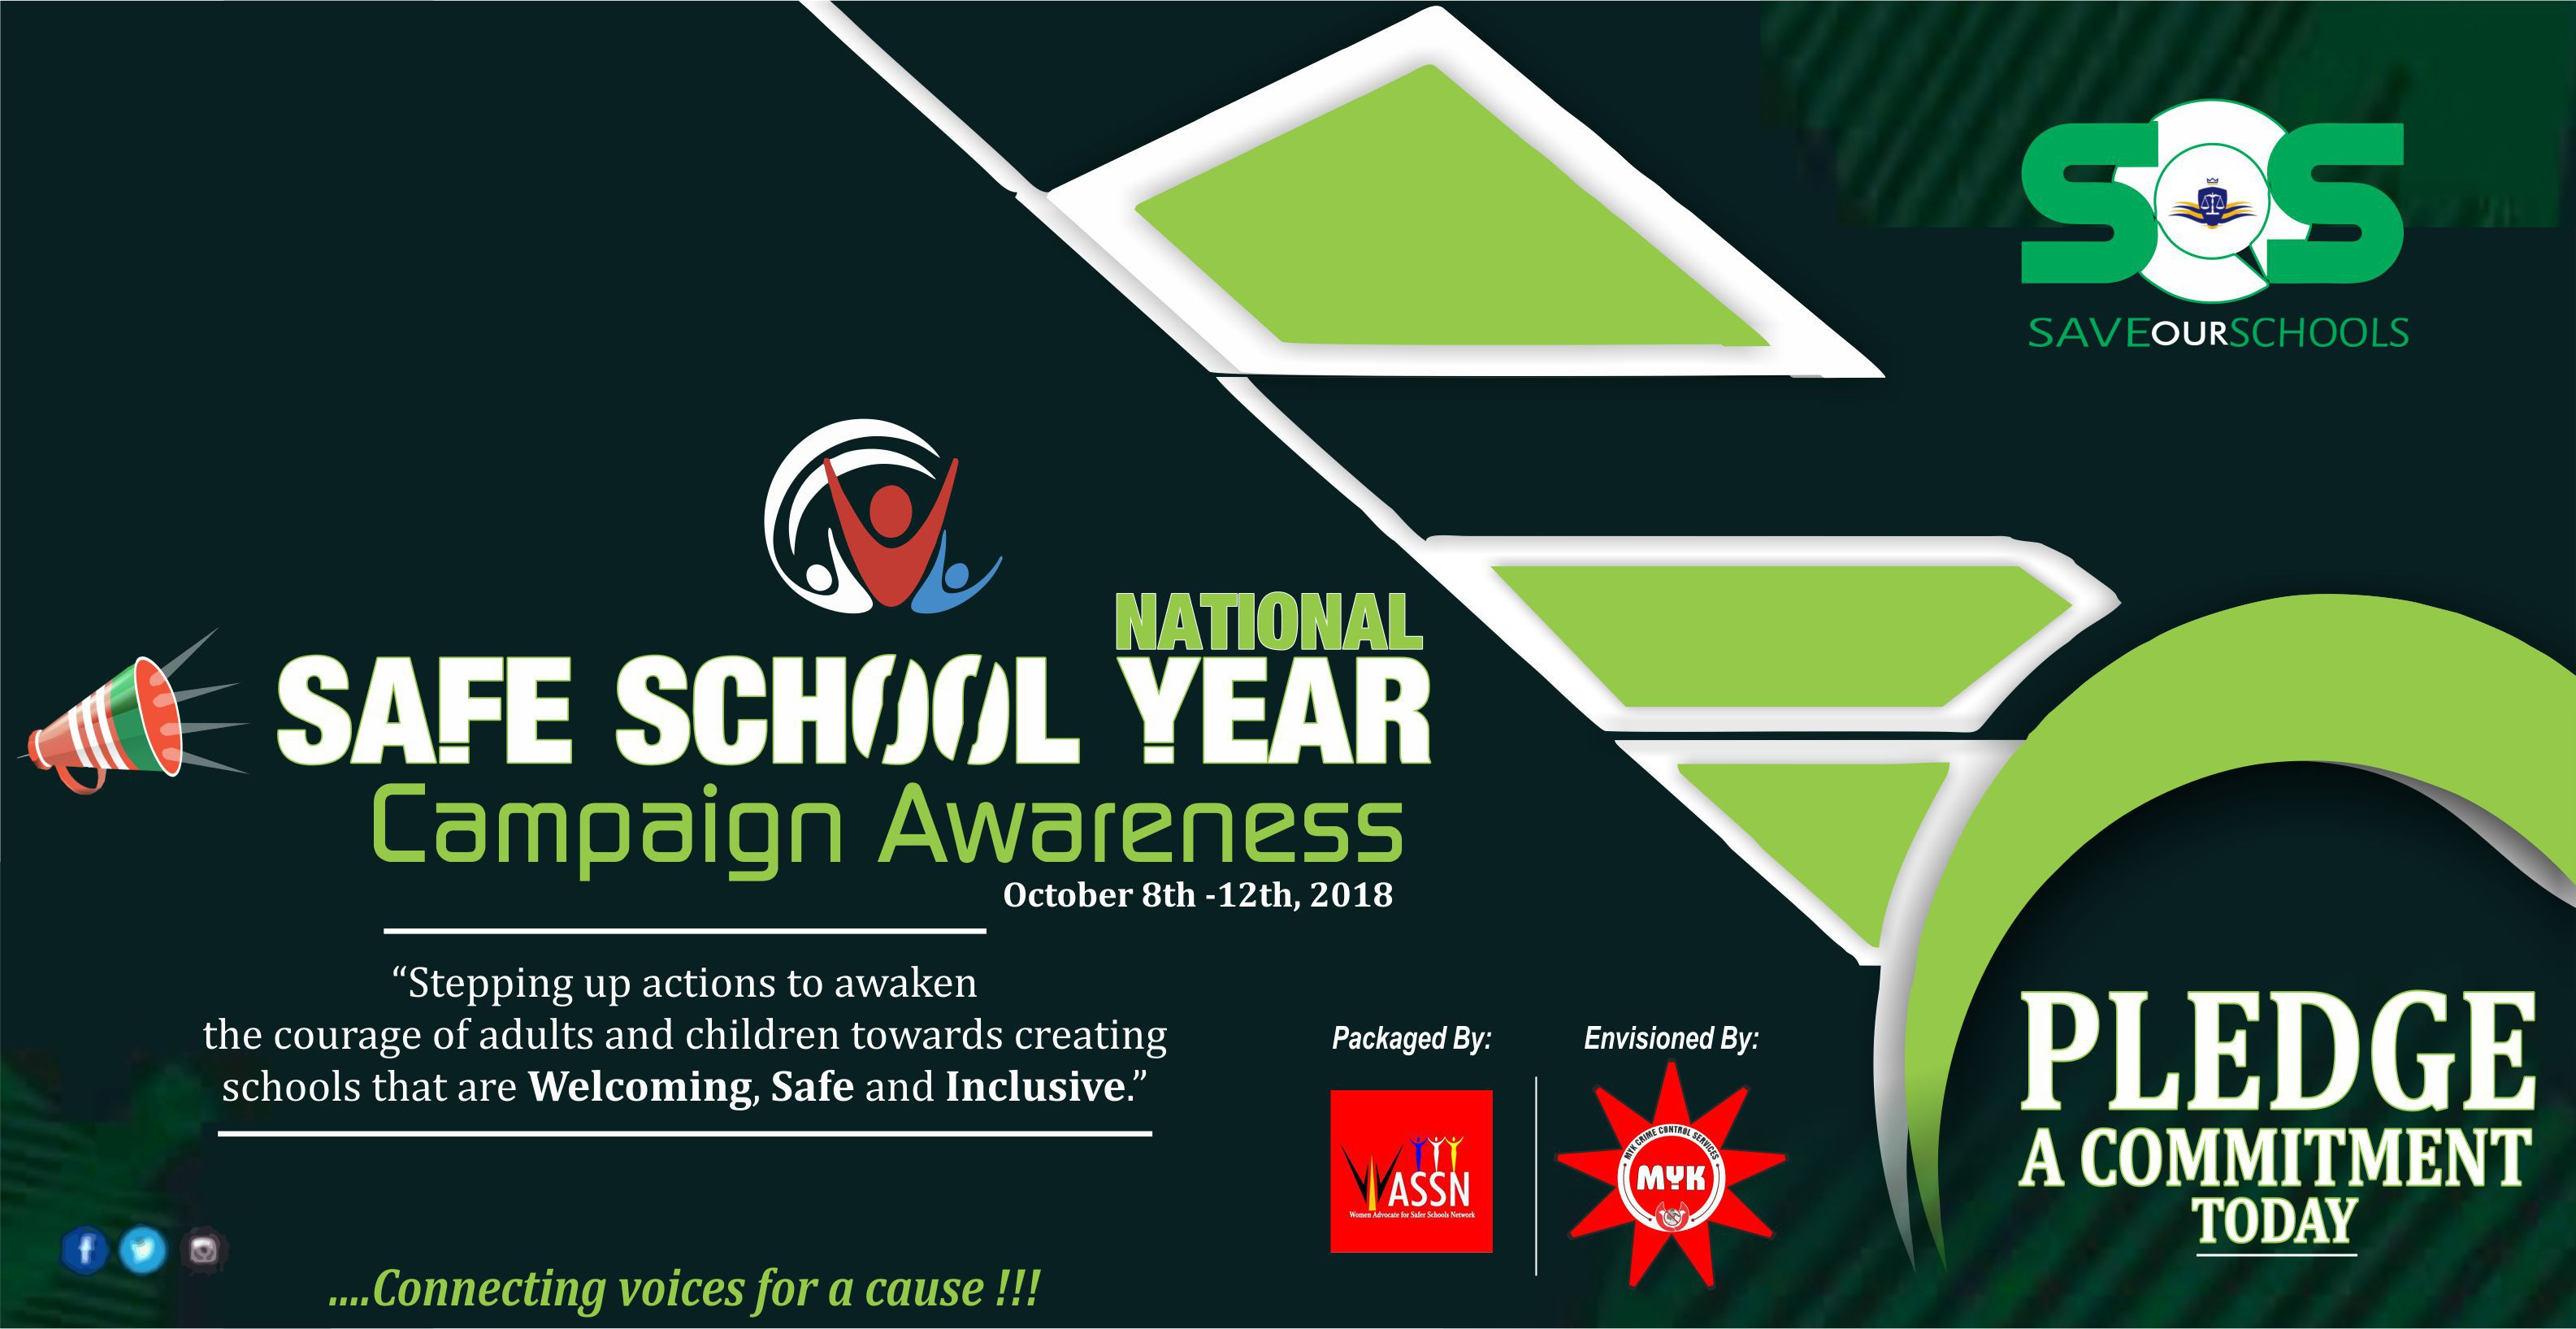 Safe School Year Campaign Awareness